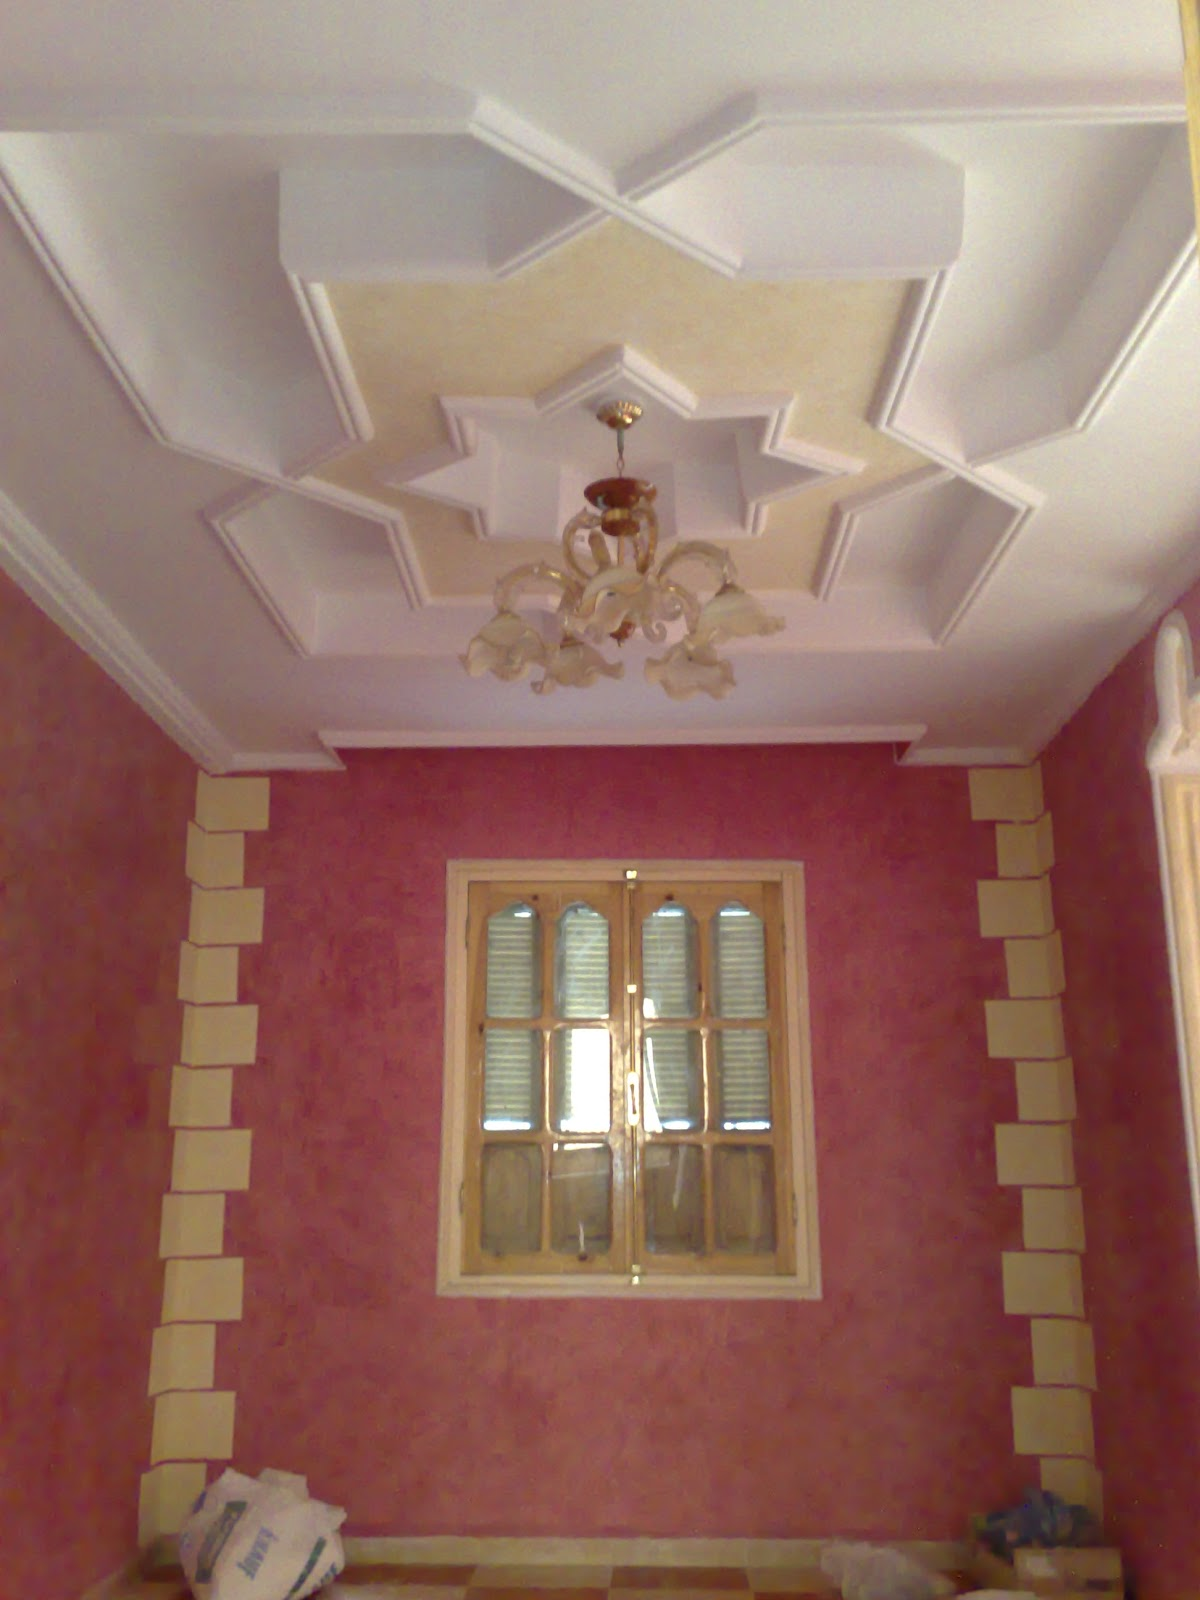 Decoration De Platre : Decoration plafond platre